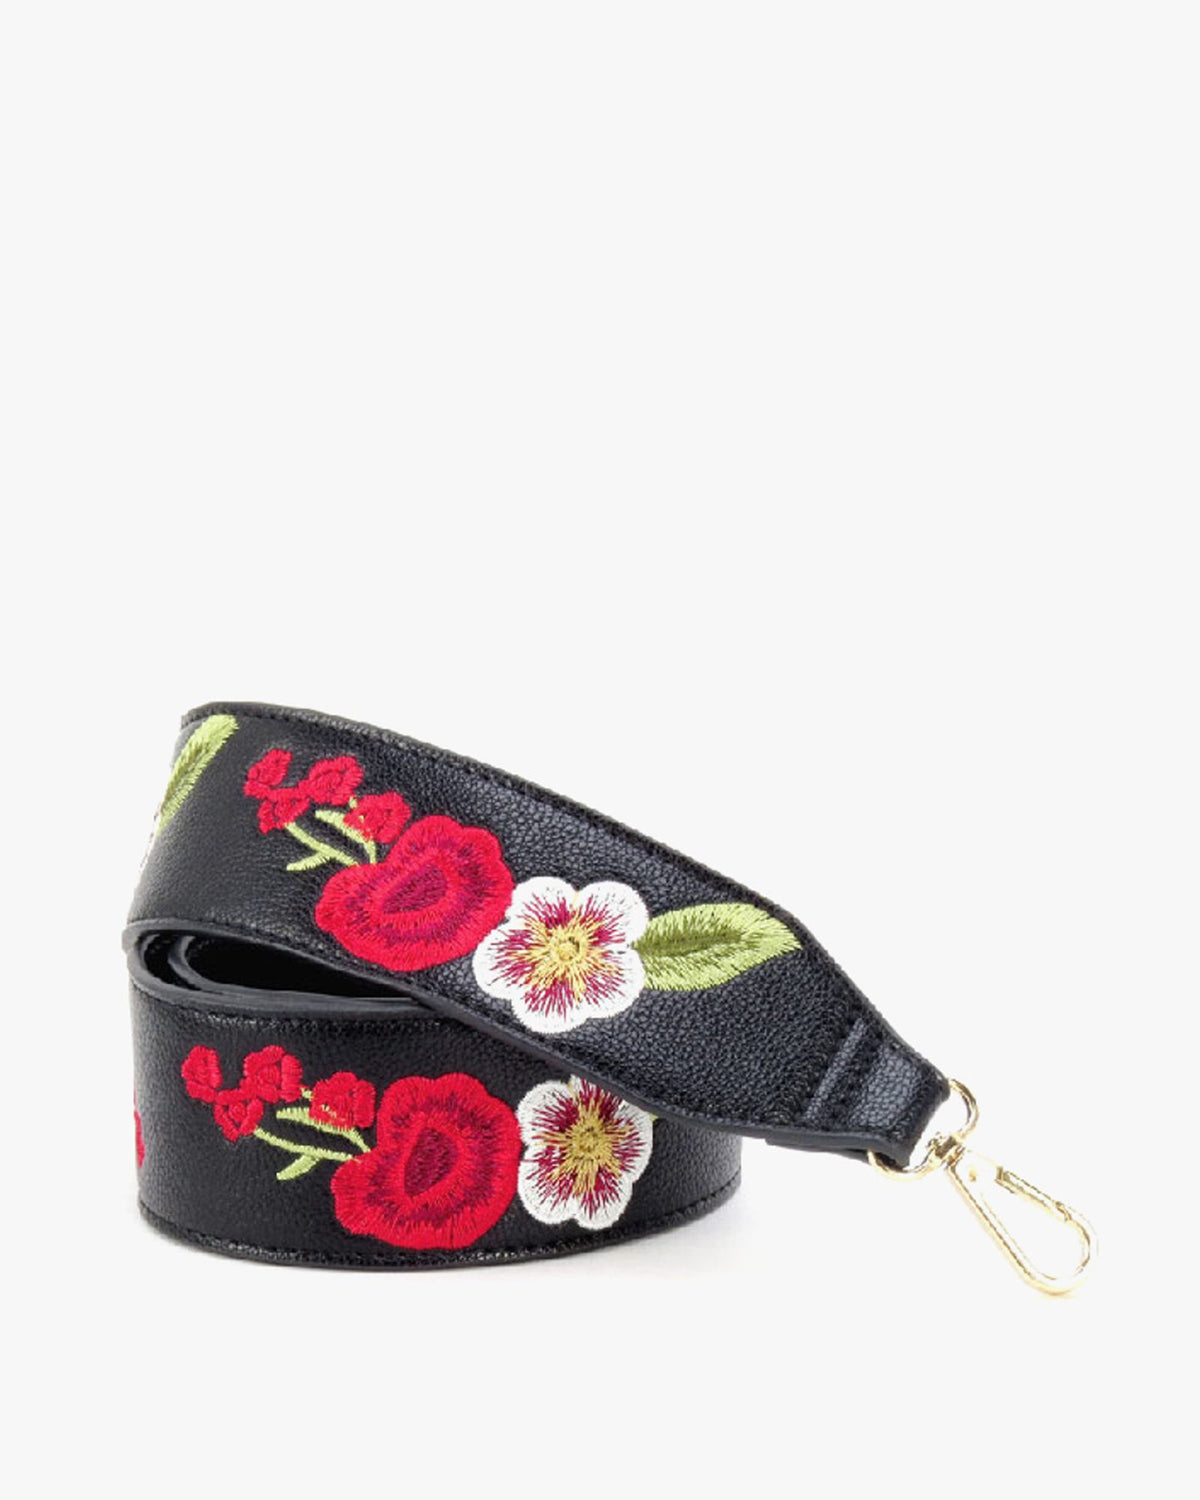 Free Spirit - Vegan Leather Embroidered Strap